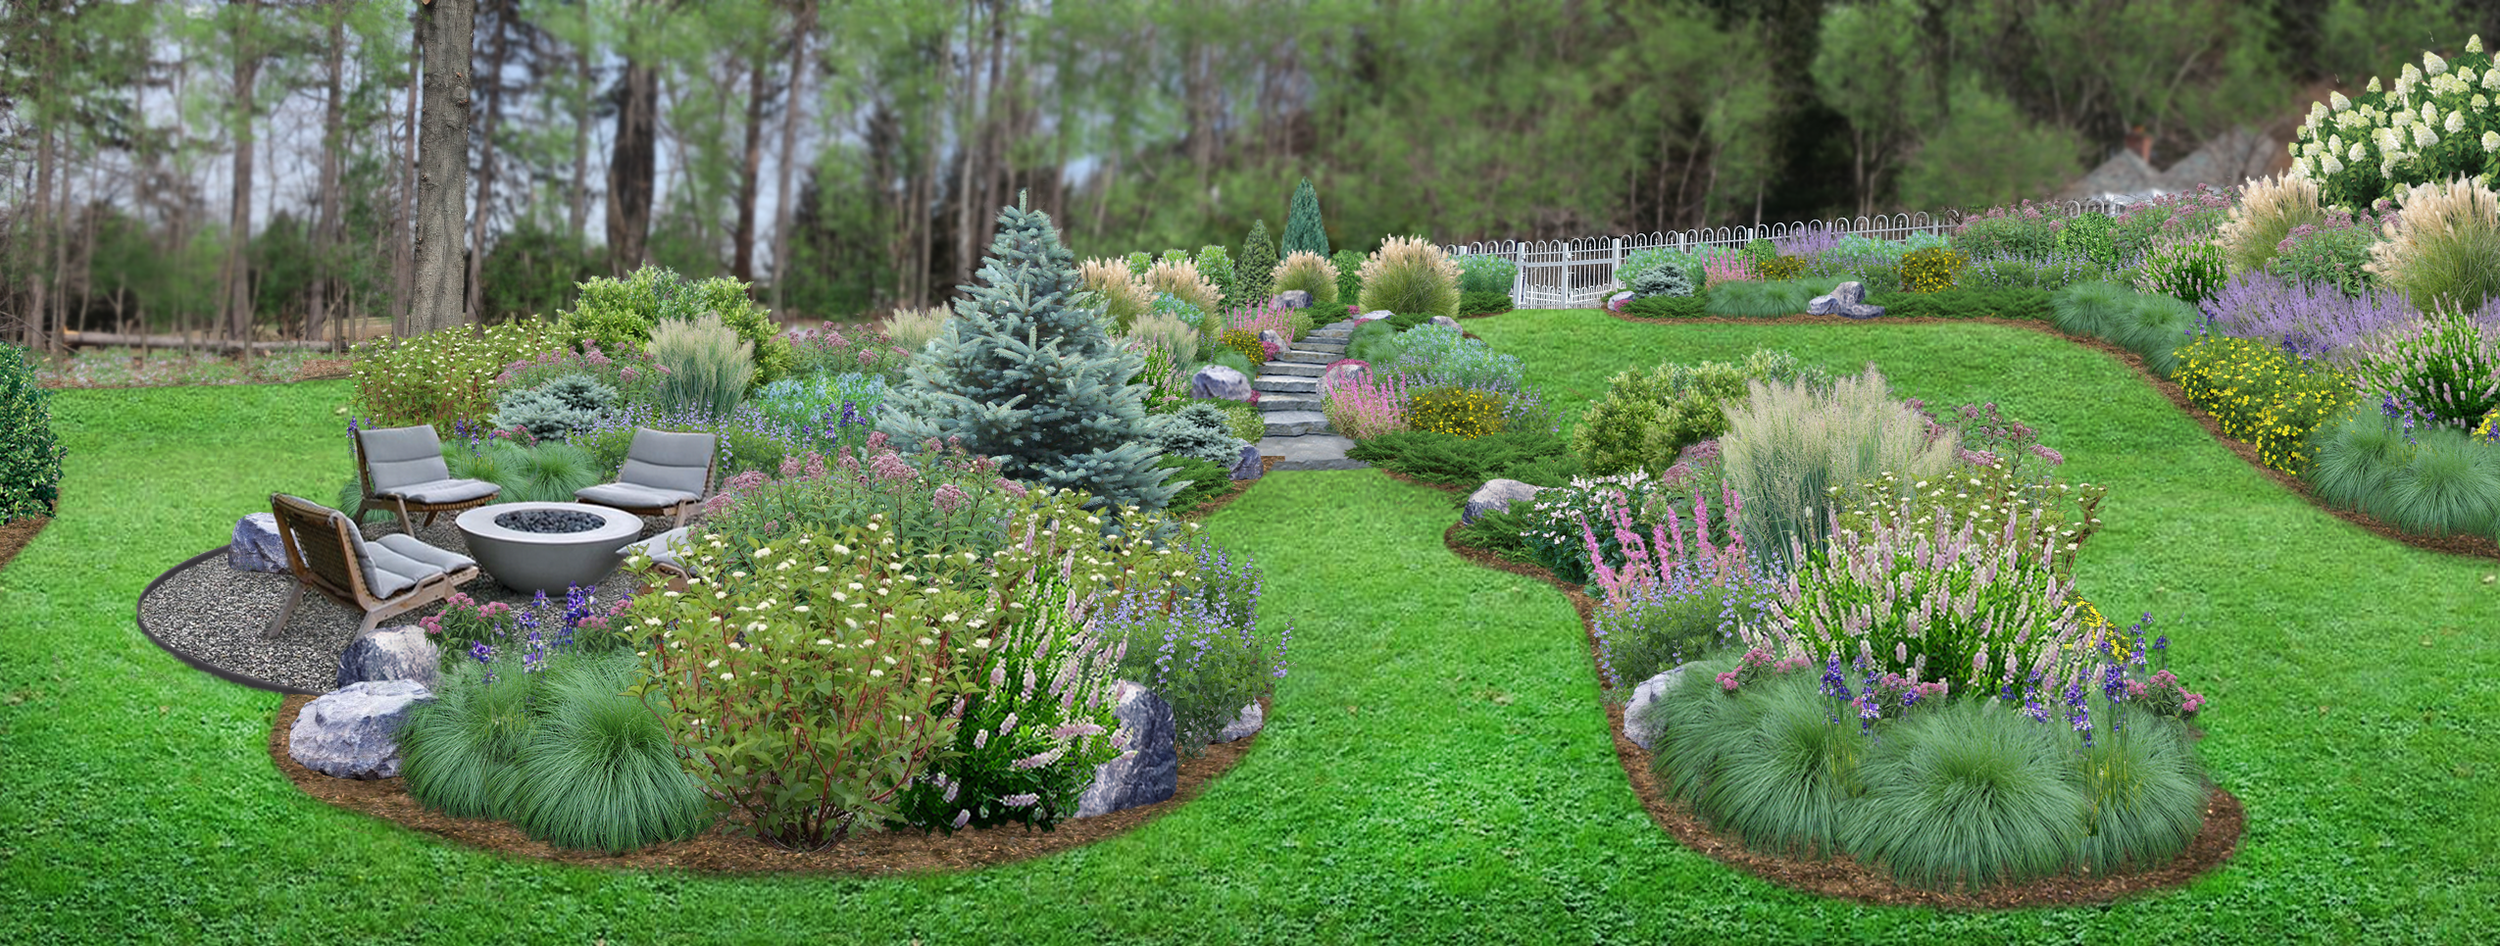 garden-design-landscape-fire-pit-steps-slope-pool-gravel-wildlife.png